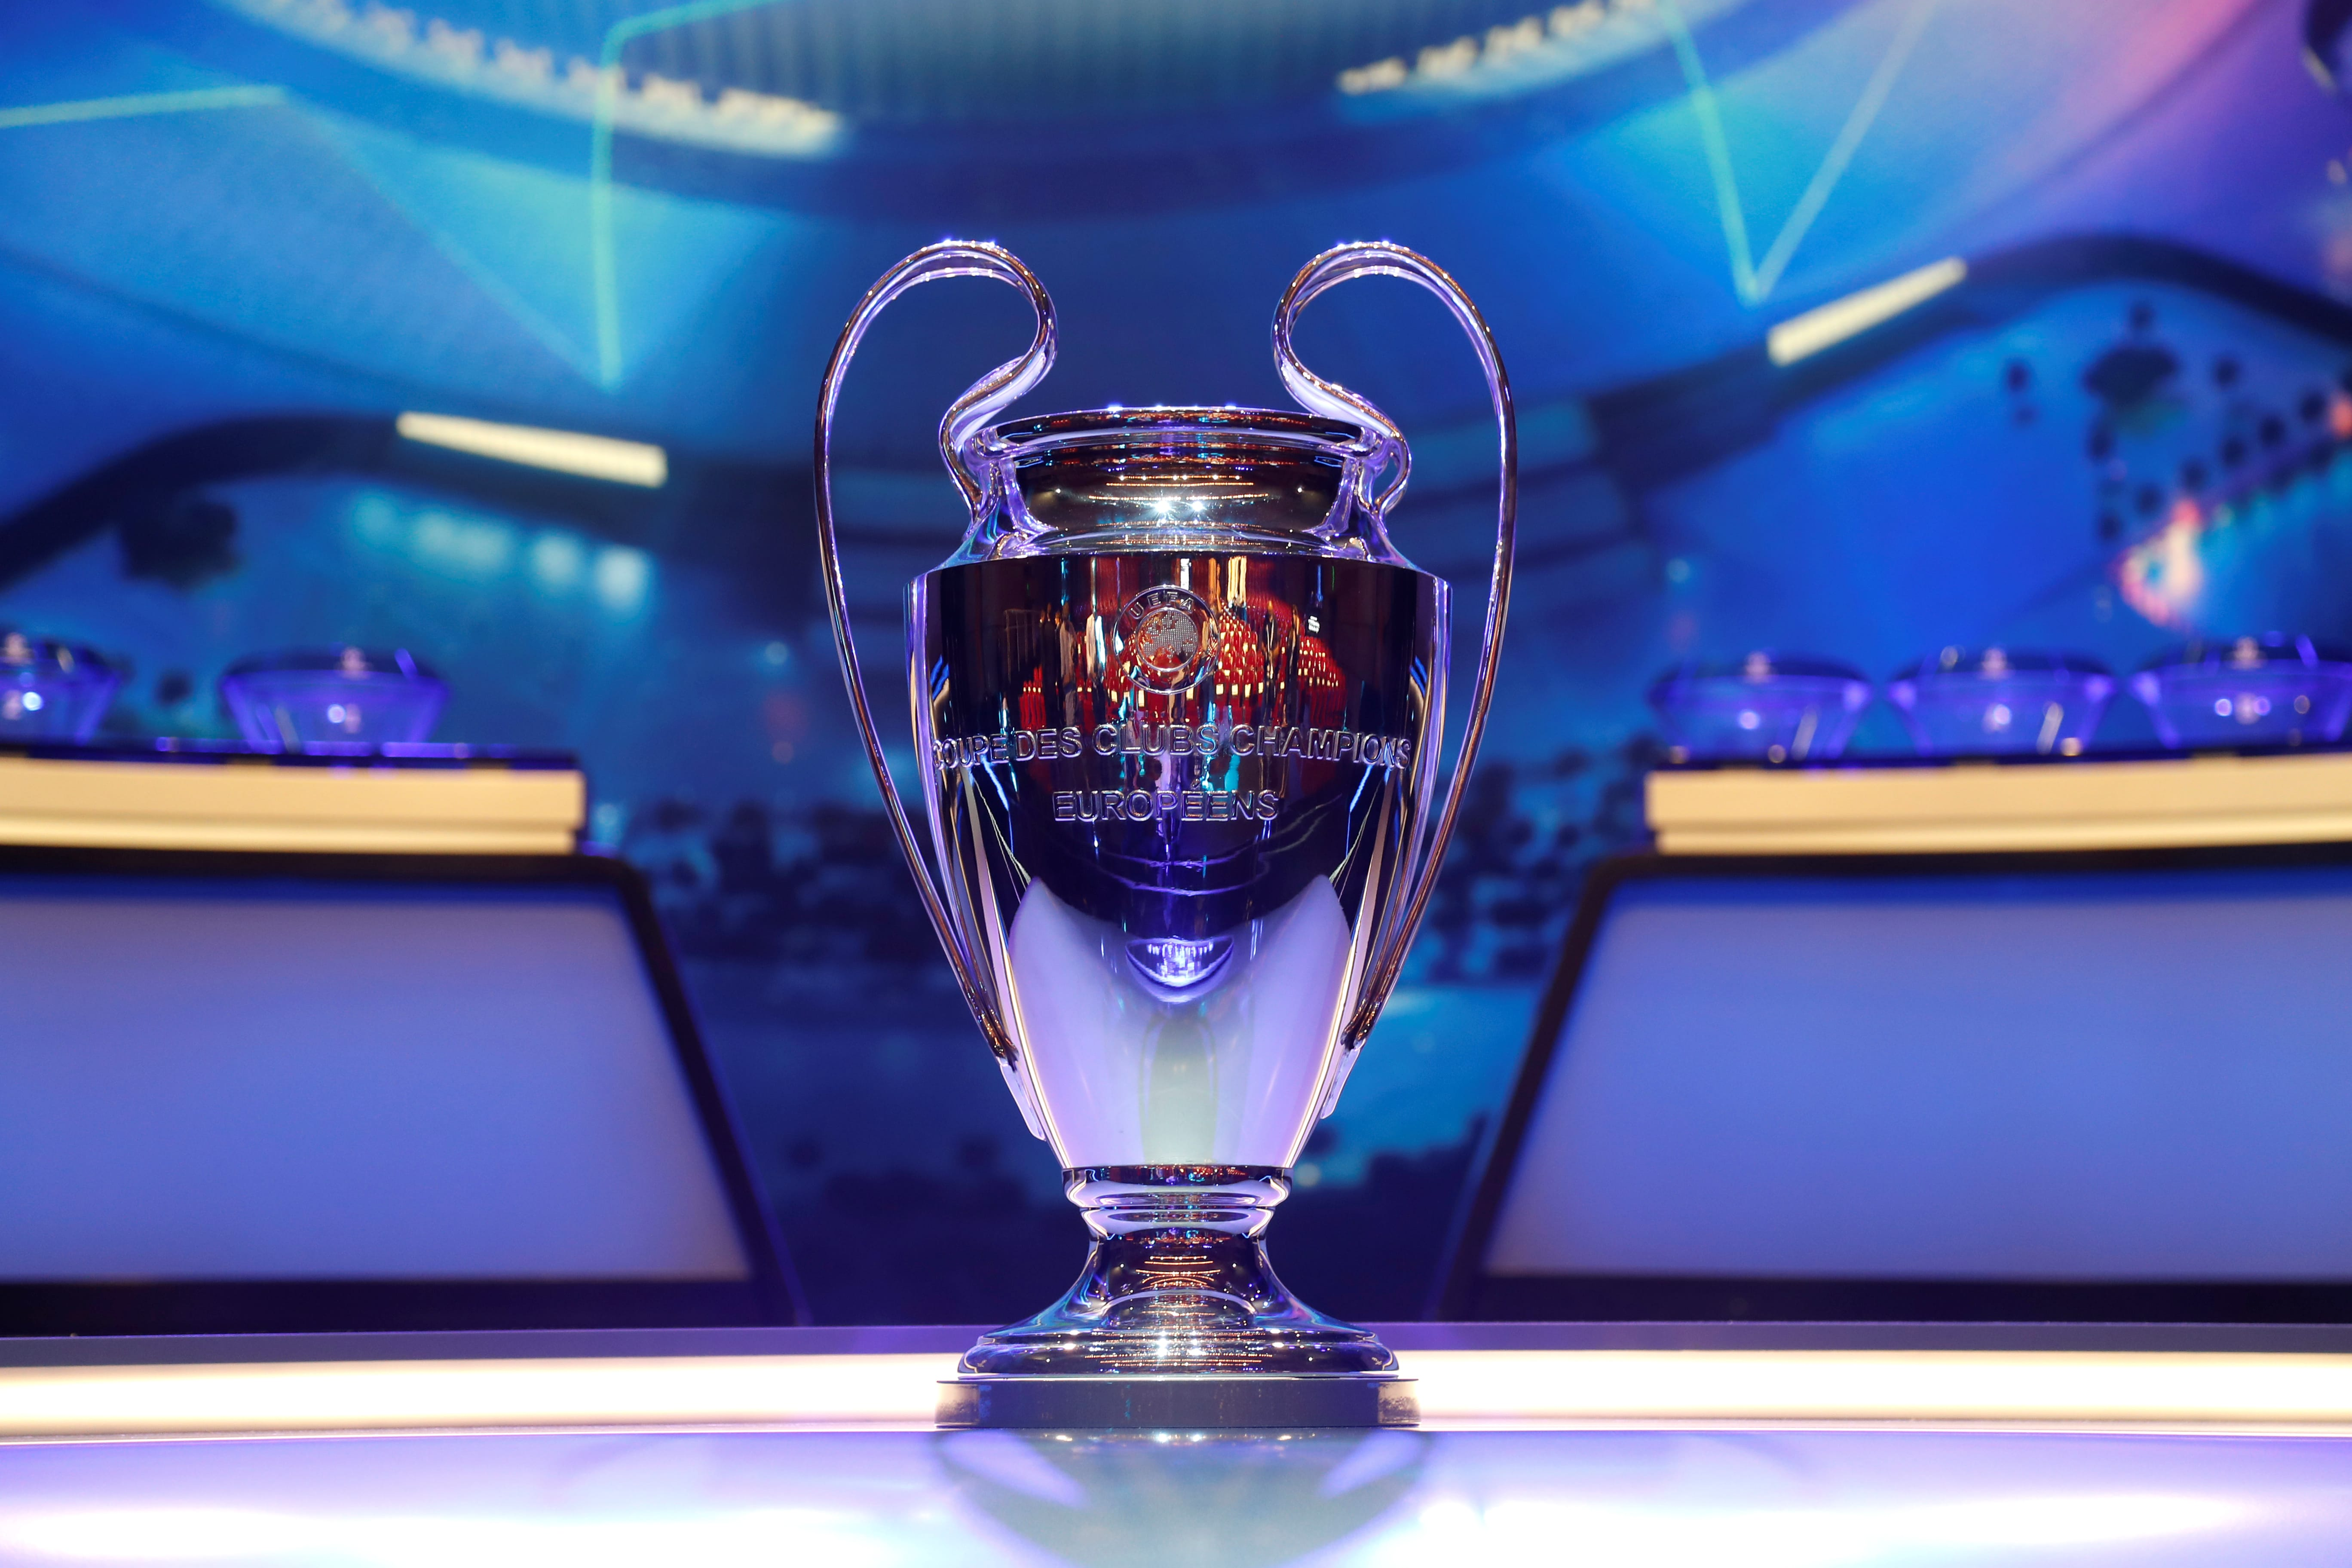 UEFA Champions League 2019-20 Round of 16 draw Who will each club face